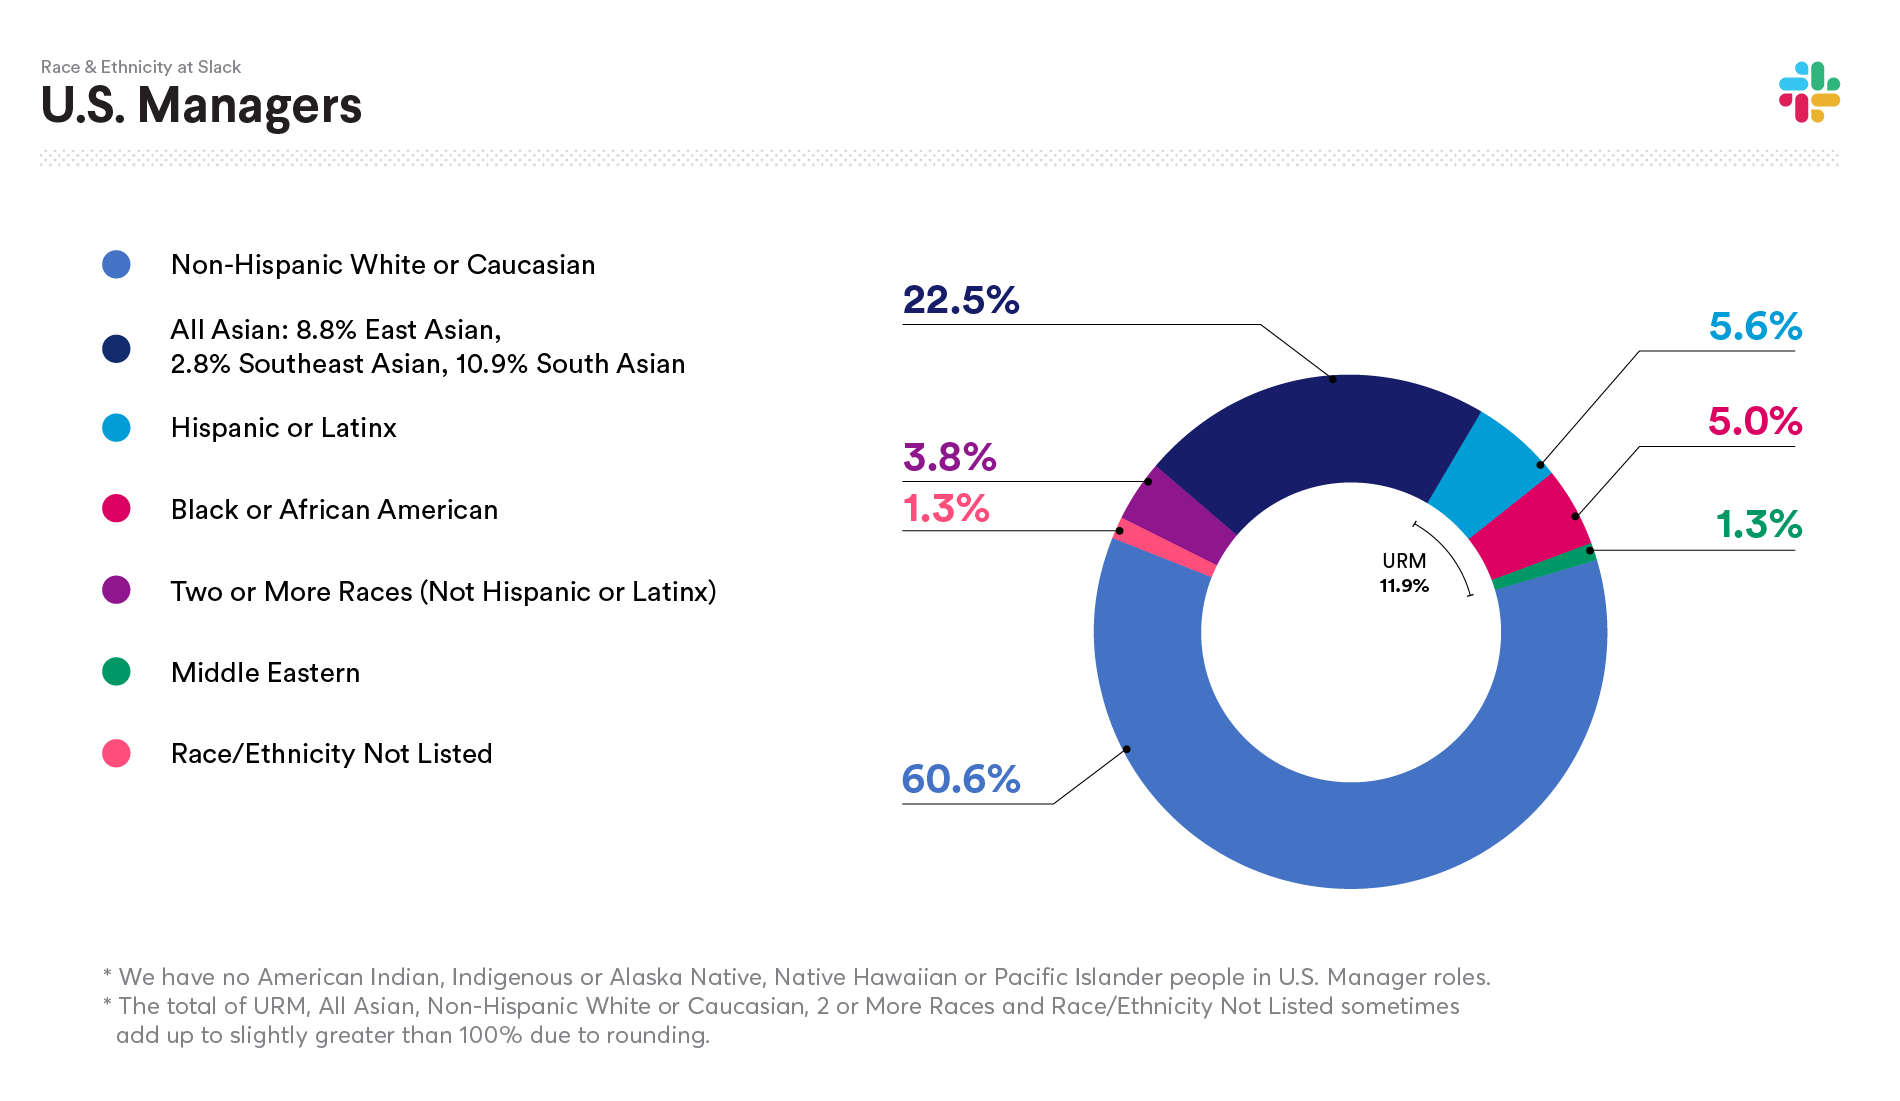 2020 Slack data on U.S. Managers Race and Ethnicity: Non-Hispanic White or Caucasian 60.6%; All Asian: 22.5%; Hispanic or Latinx 5.6%; Black or African American 5.0%; Two or more races (not Hispanic or Latinx) 3.8%; Middle Eastern 1.3%; Native Hawaiian or Pacific Islander 0.0%; American Indian, Indigenous or Alaska Native 0.0%; Race/Ethnicity not listed 1.3%